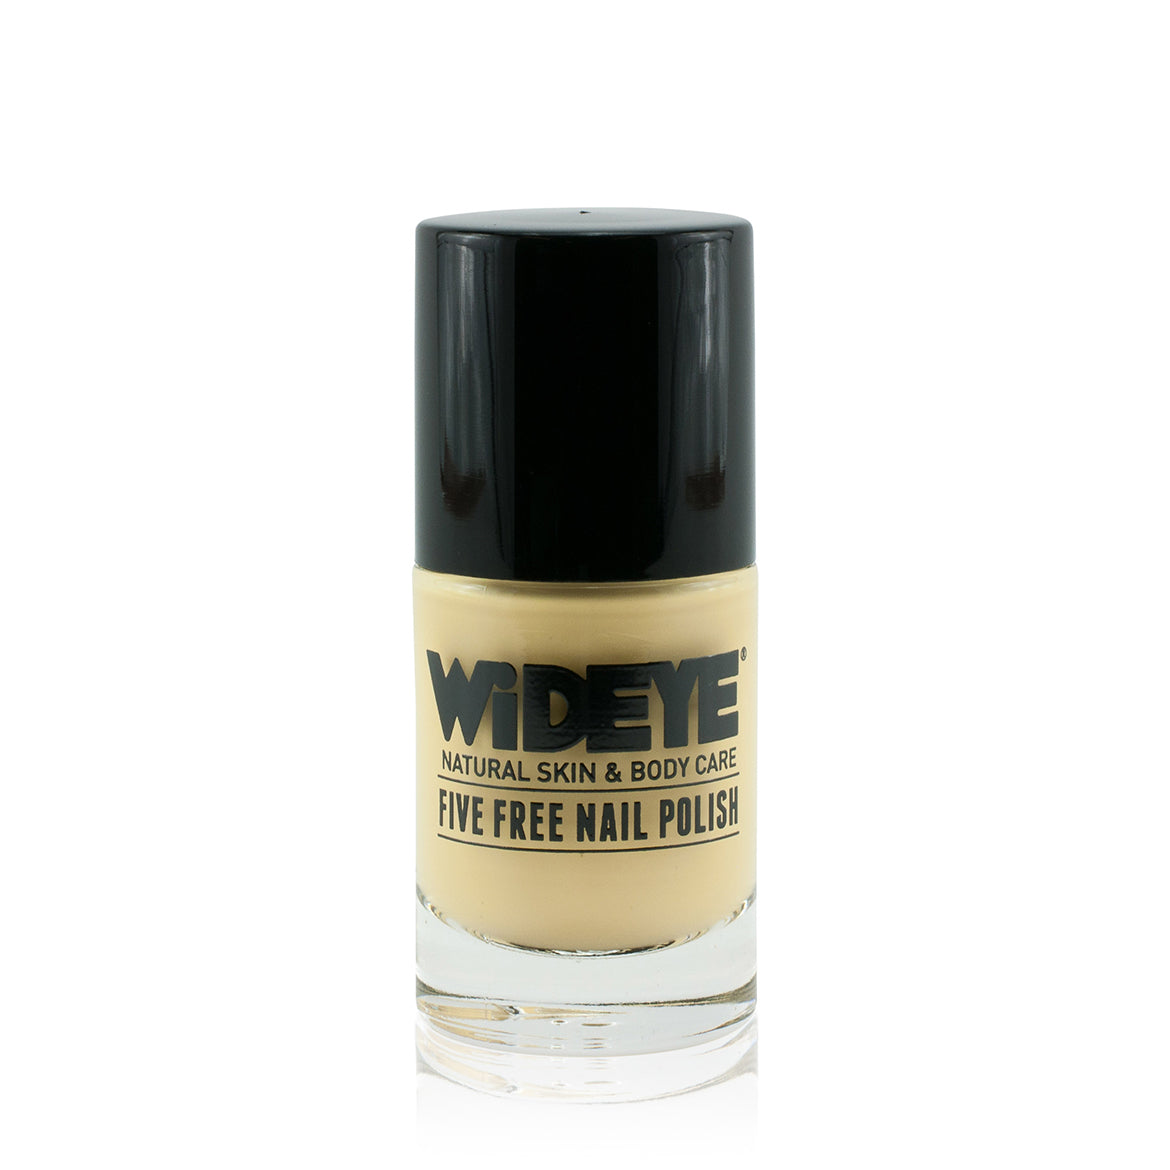 Pastel yellow nail polish in glass bottle by WiDEYE.